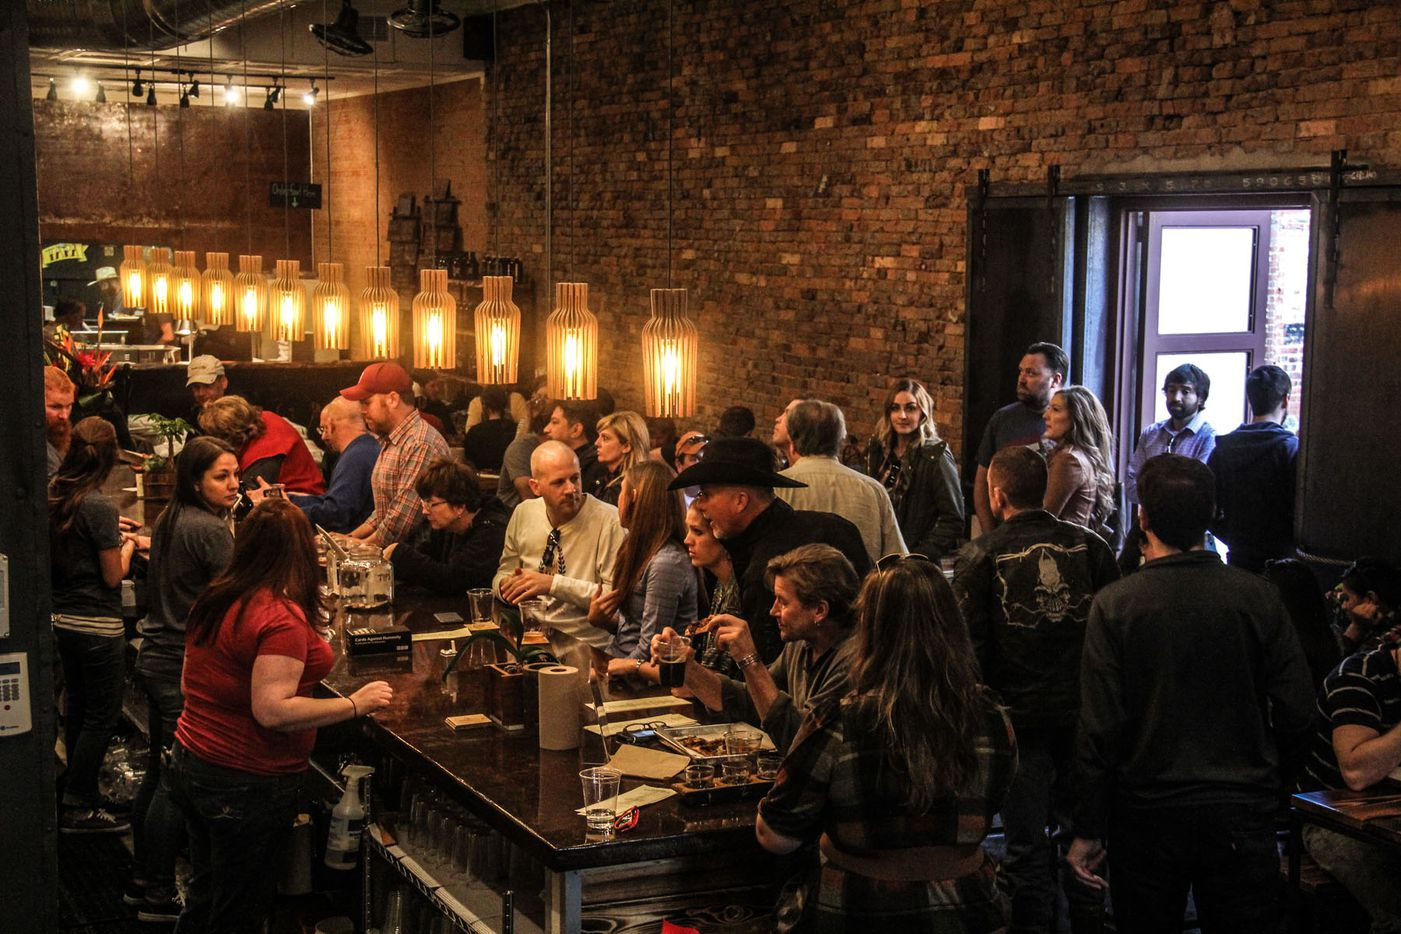 Intrinsic Smokehouse and Brewery on the square in Downtown Garland held its grand opening on December 5, 2015.